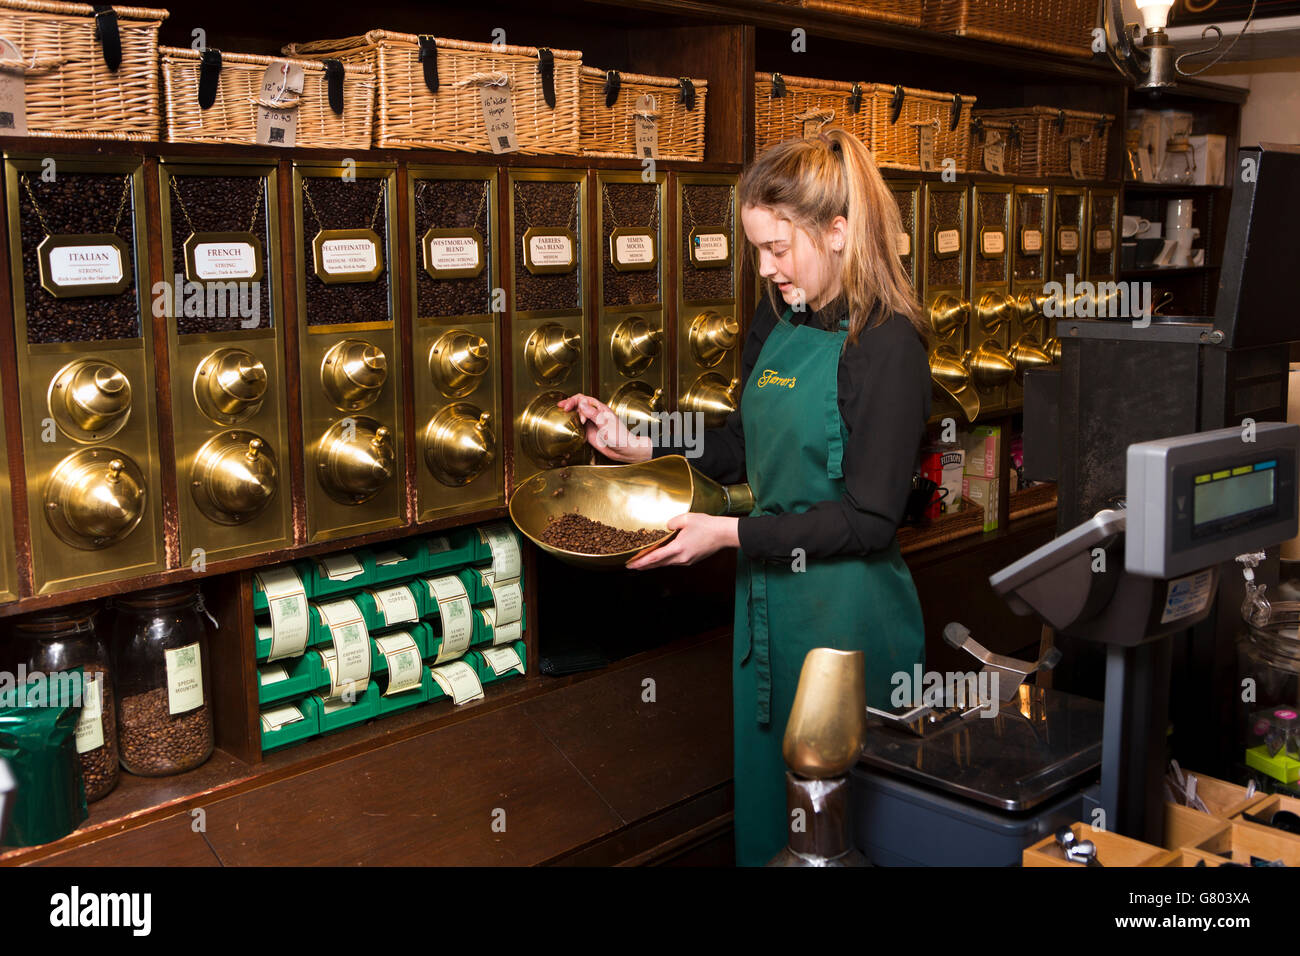 UK, Cumbria, Kendal, Stricklandgate, Farrers Coffee Merchants, assistant weighing beans - Stock Image